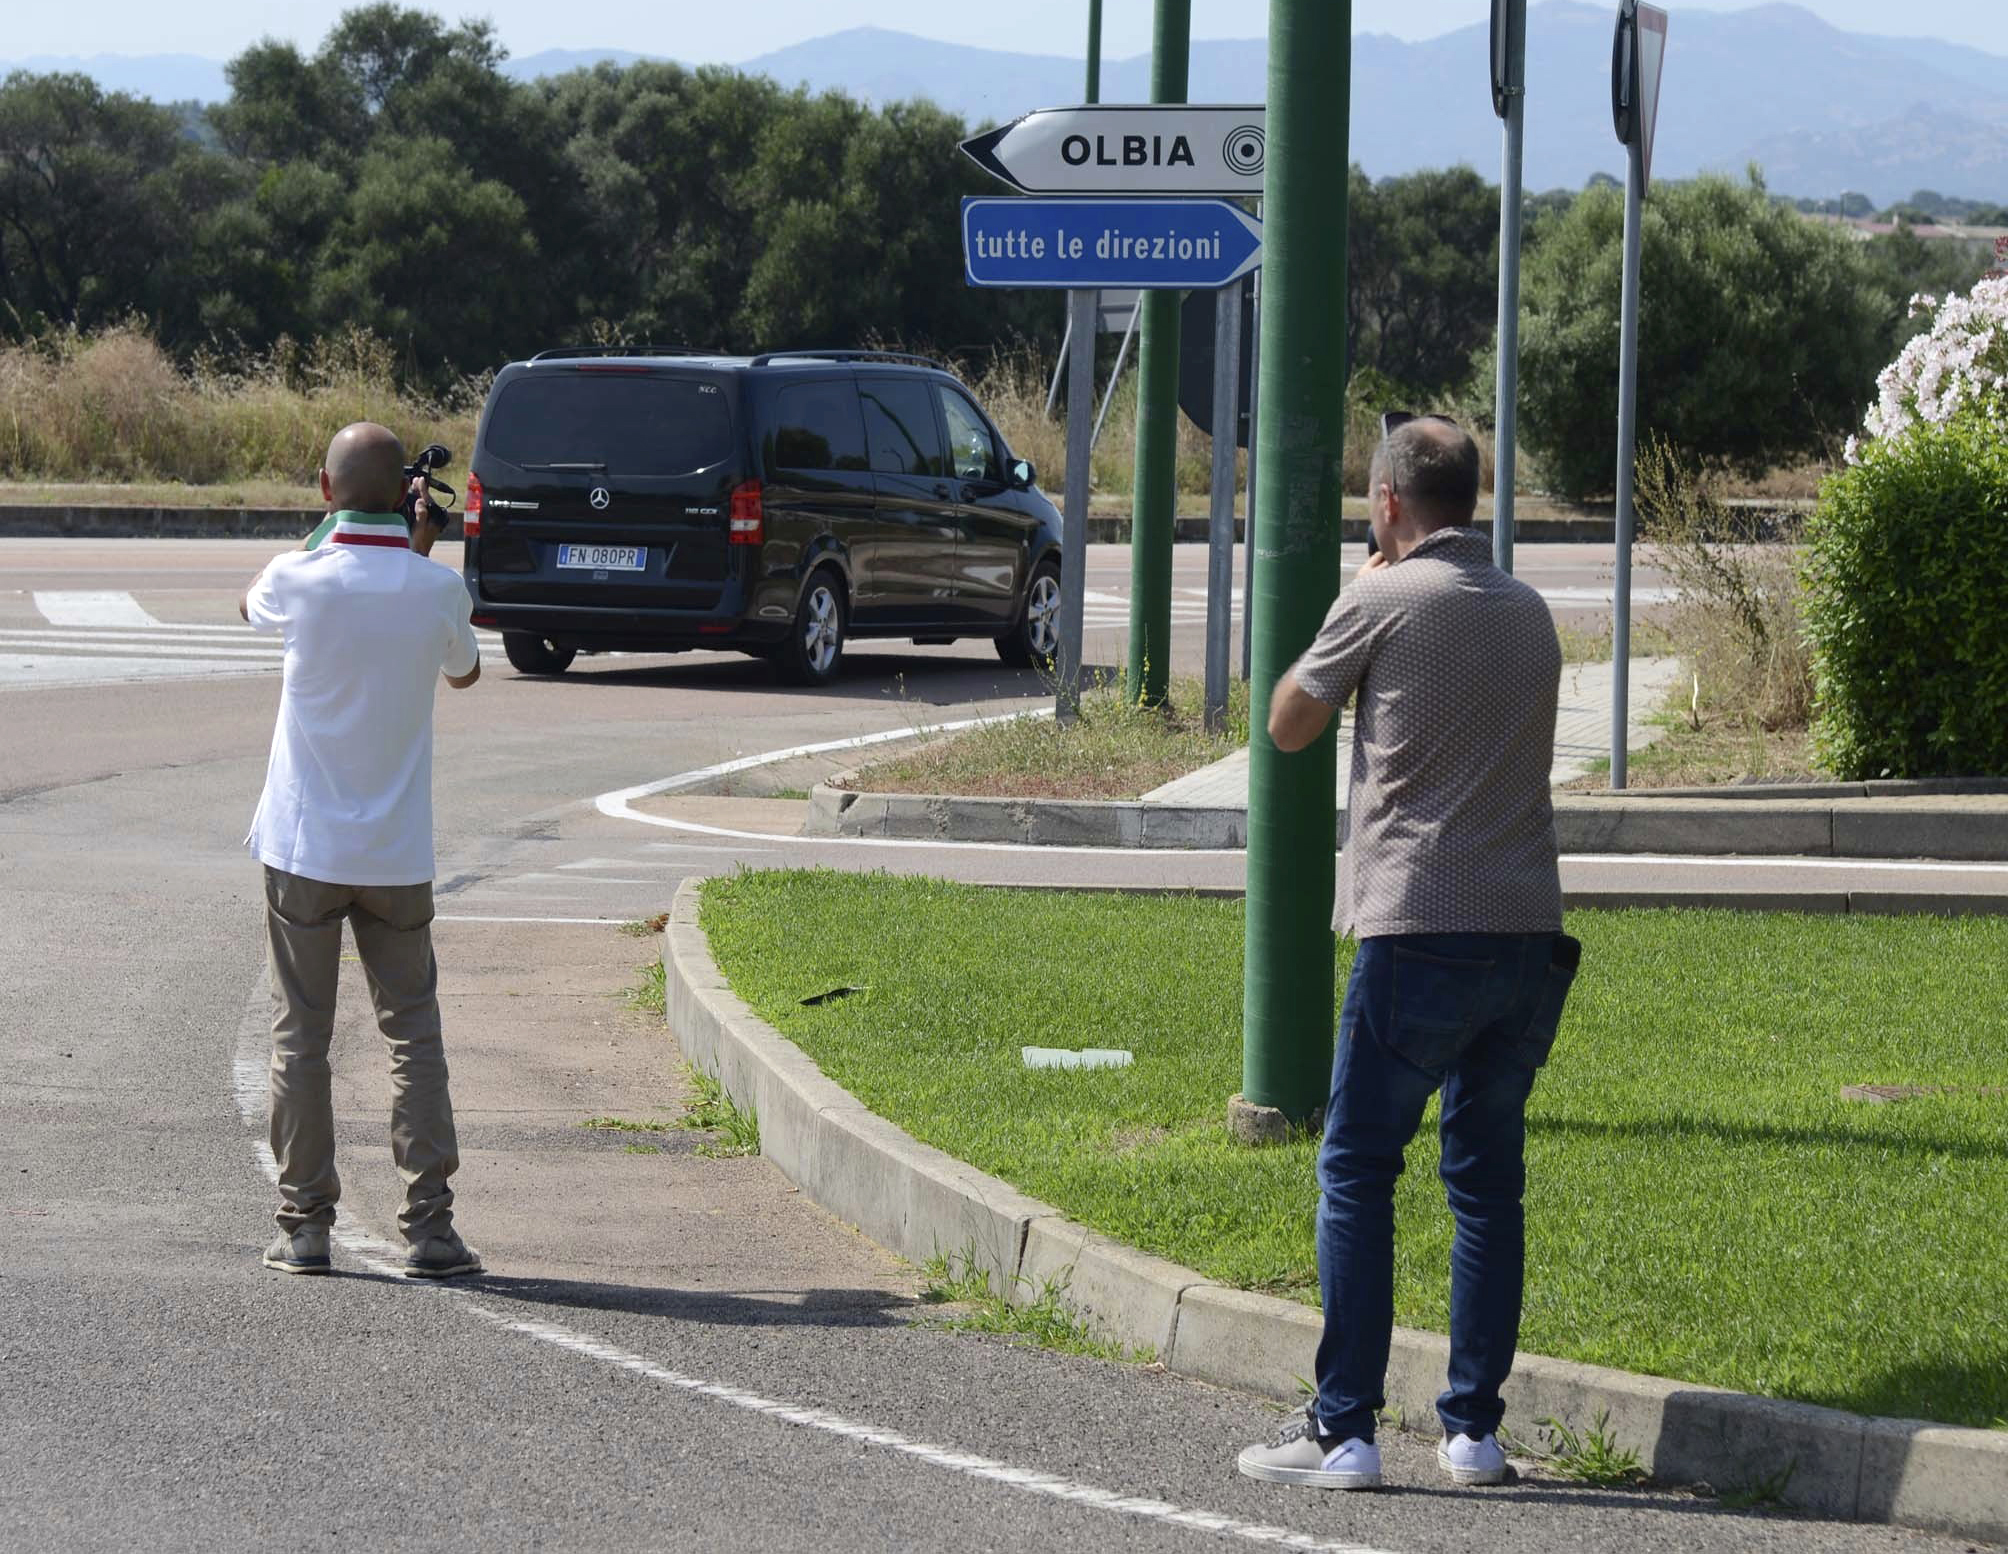 Reporters film a black van leaving the John Paul II hospital in the Sardinian town of Olbia